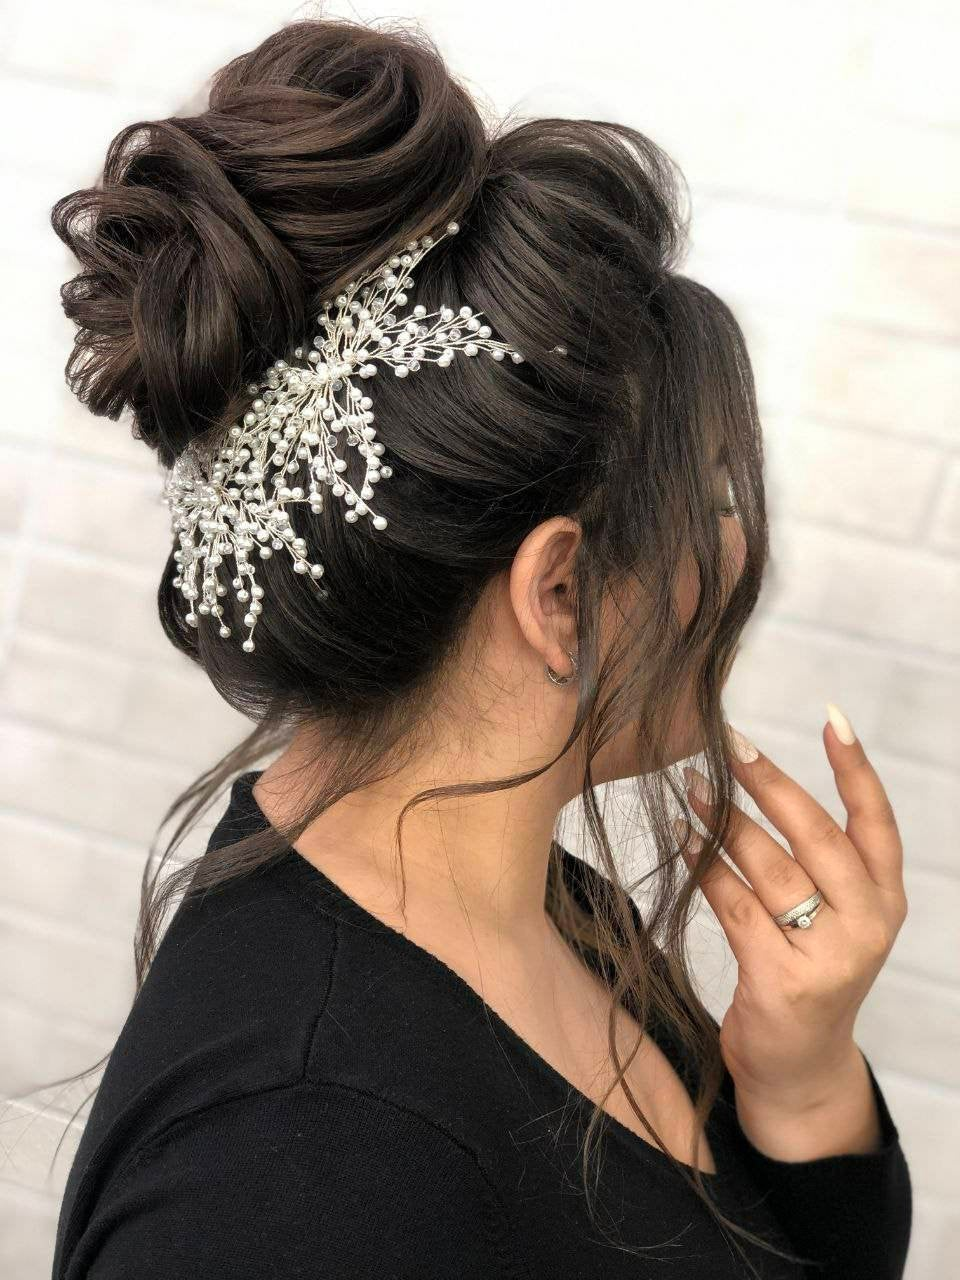 Bridal Hair Pin Pearl For High Bun/Wedding Accessories/Pearl Pins/Wedding Piece Pearl/Hair Clip Bun/Headpiece